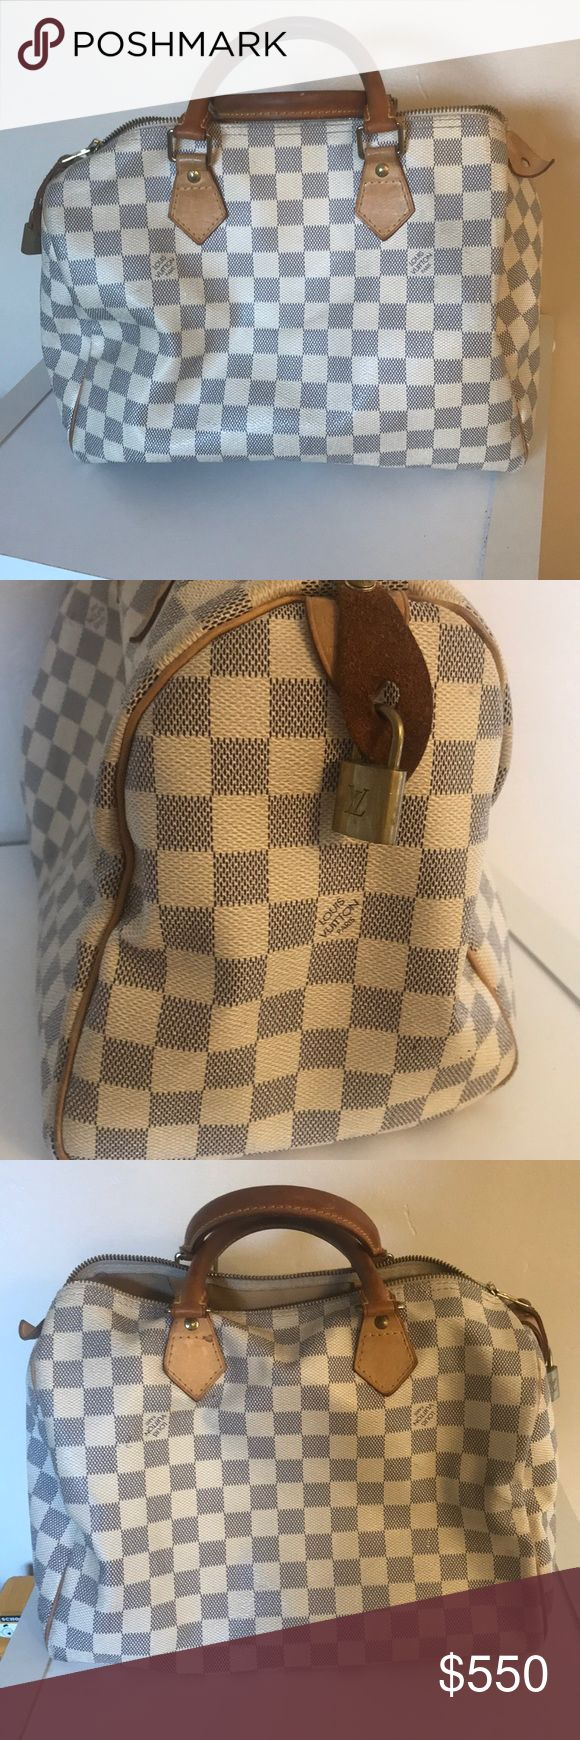 Louis Vuitton Speedy Bag Louis Vuitton Speedy Bag. Mostly just worn on the handles. good condition. Louis Vuitton Bags Mini Bags